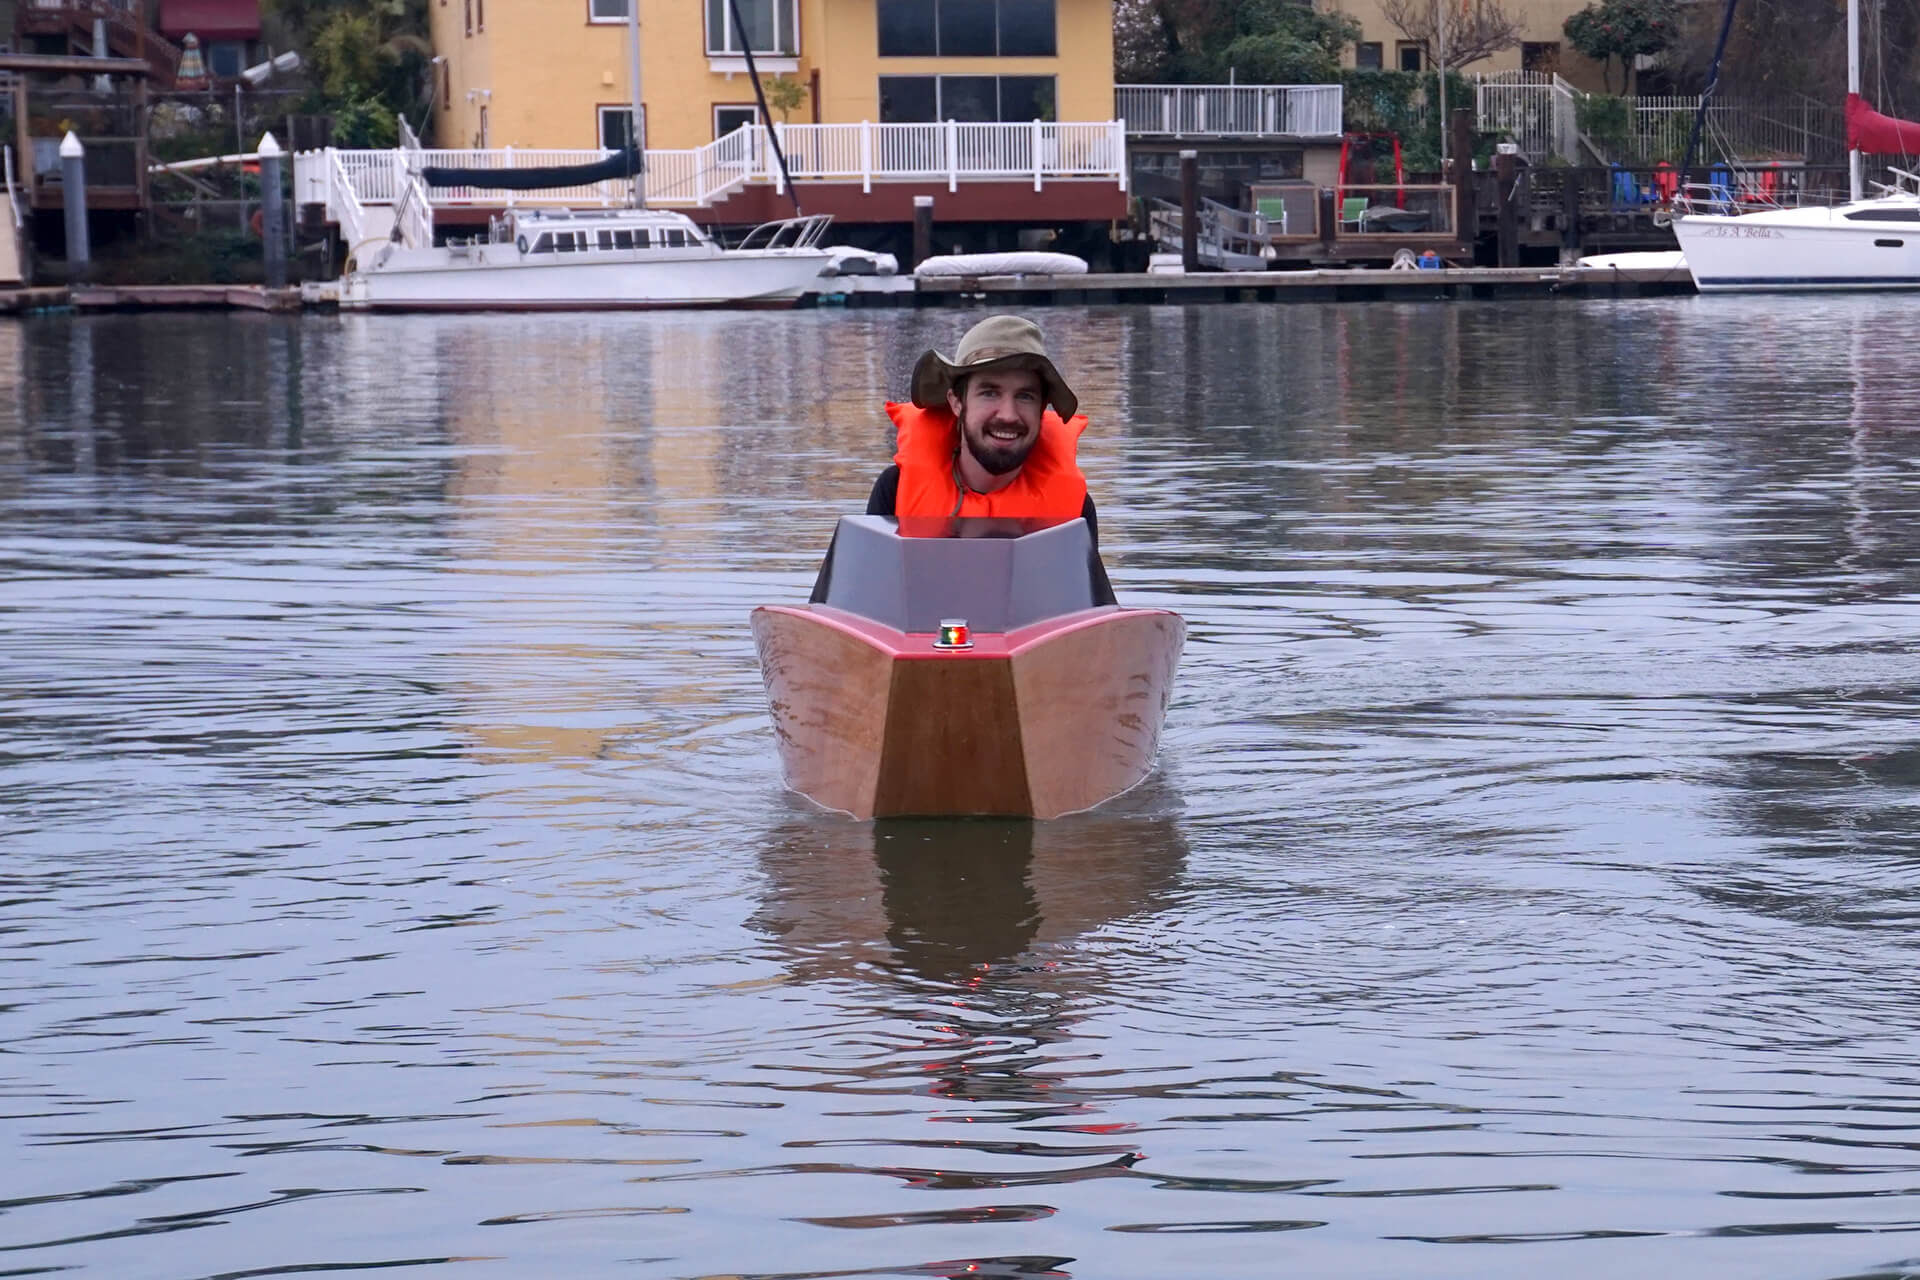 Josh racing towards the camera at the first launch of the mini electric boat